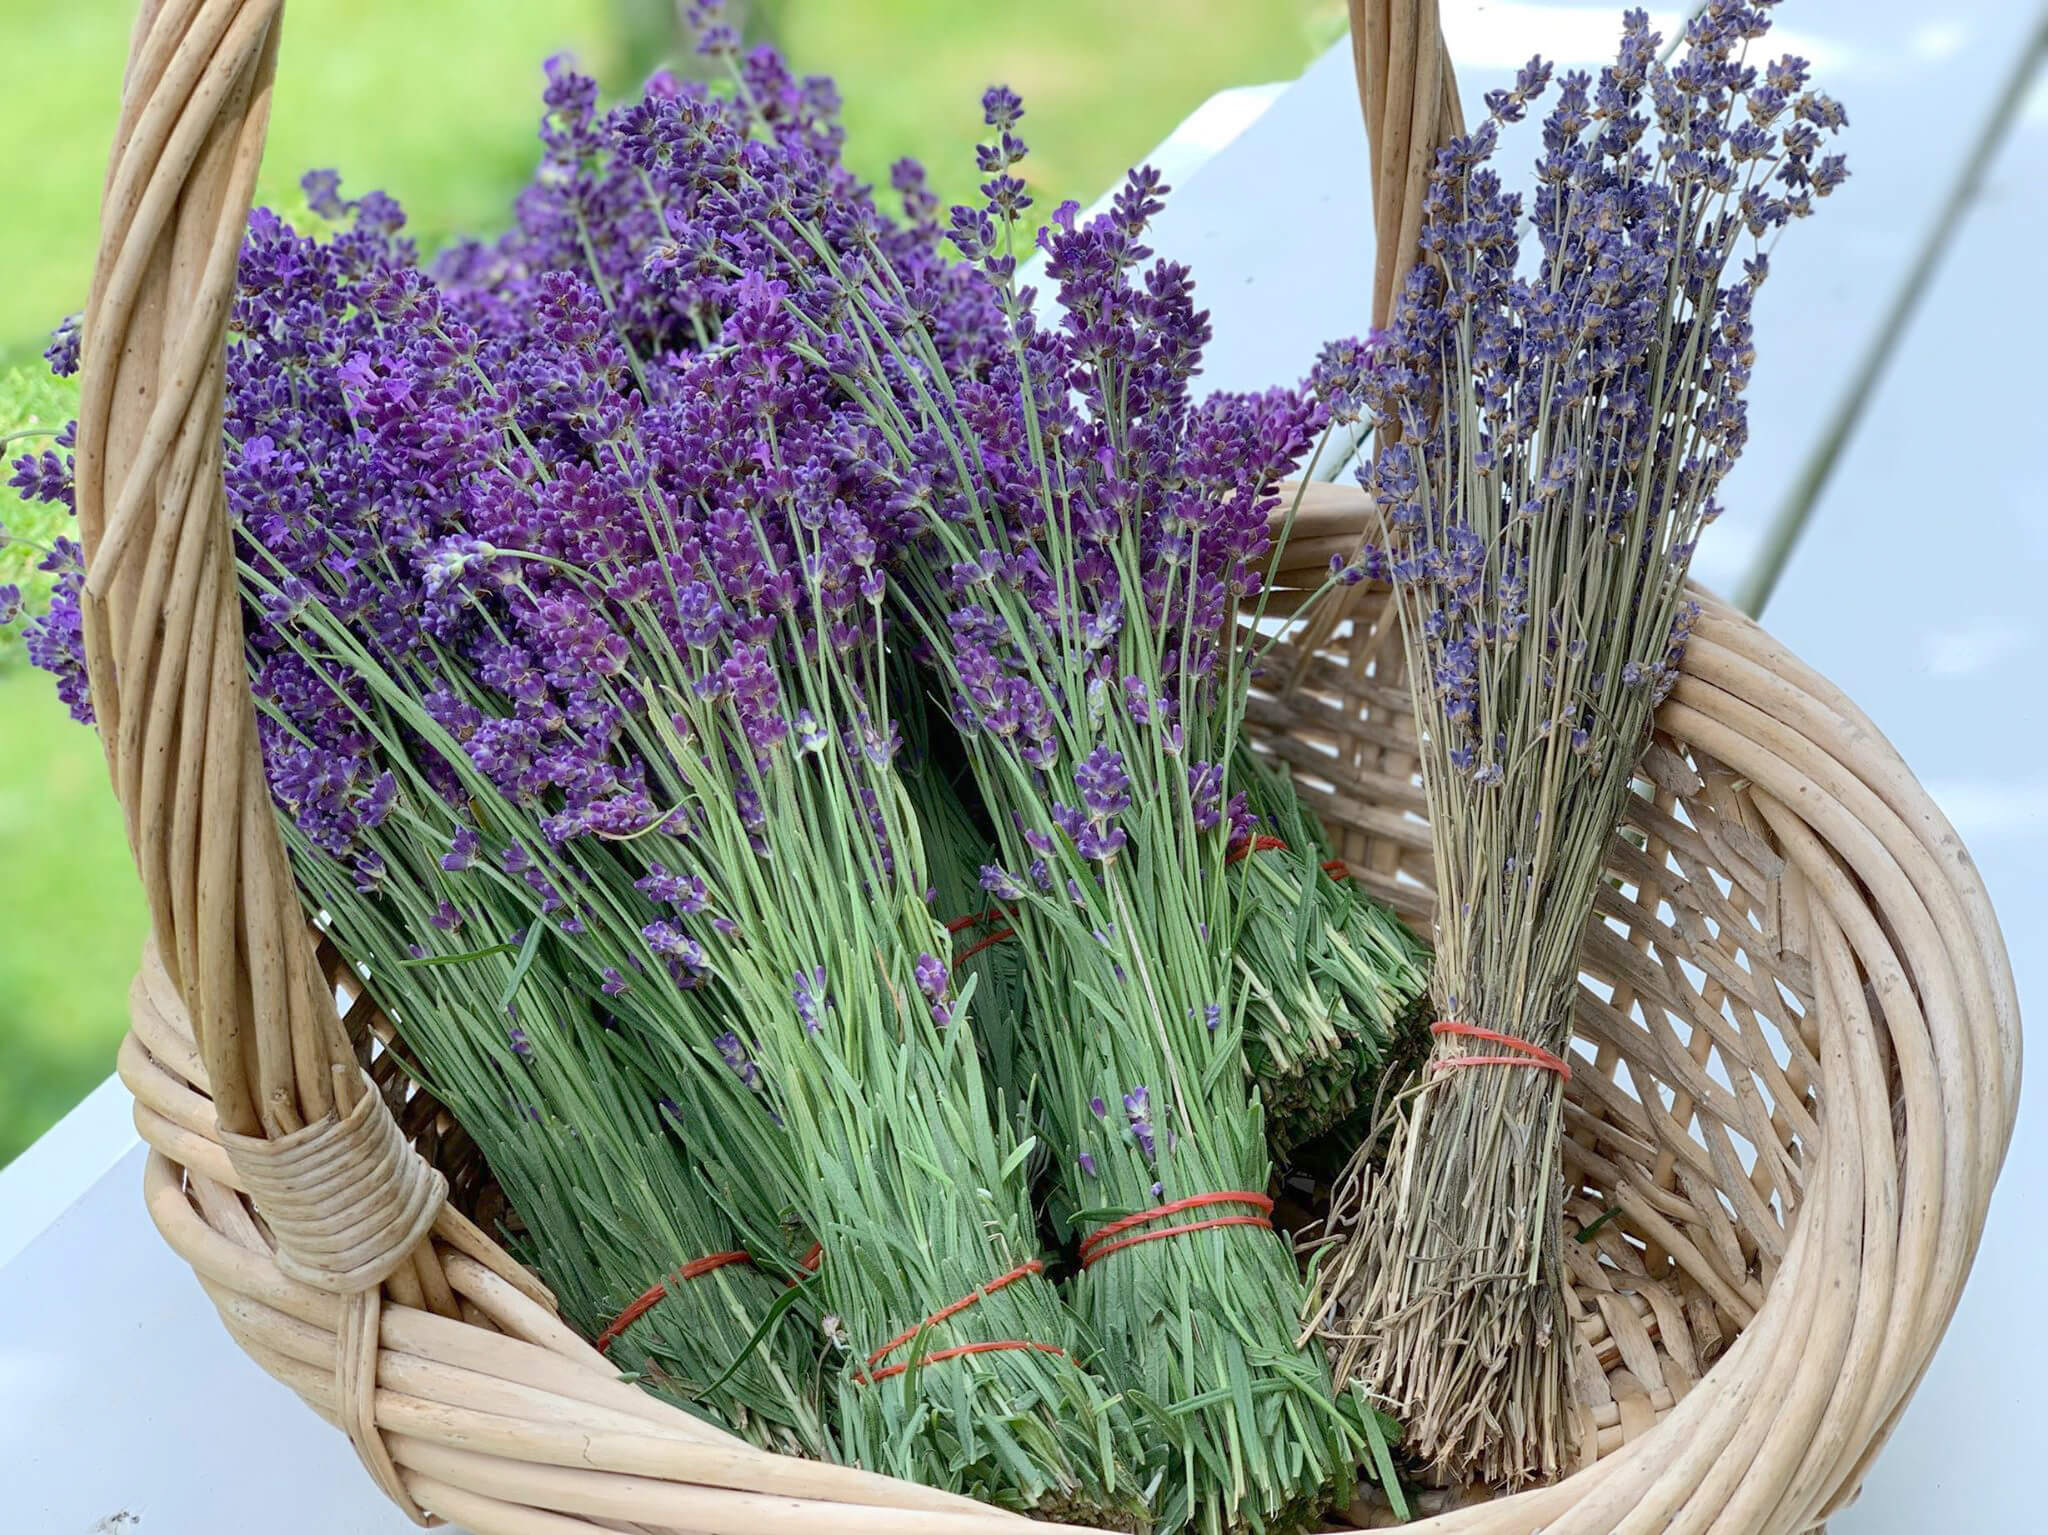 Lavandula Angustifolia dried flower, New Zealand Lavender Farm